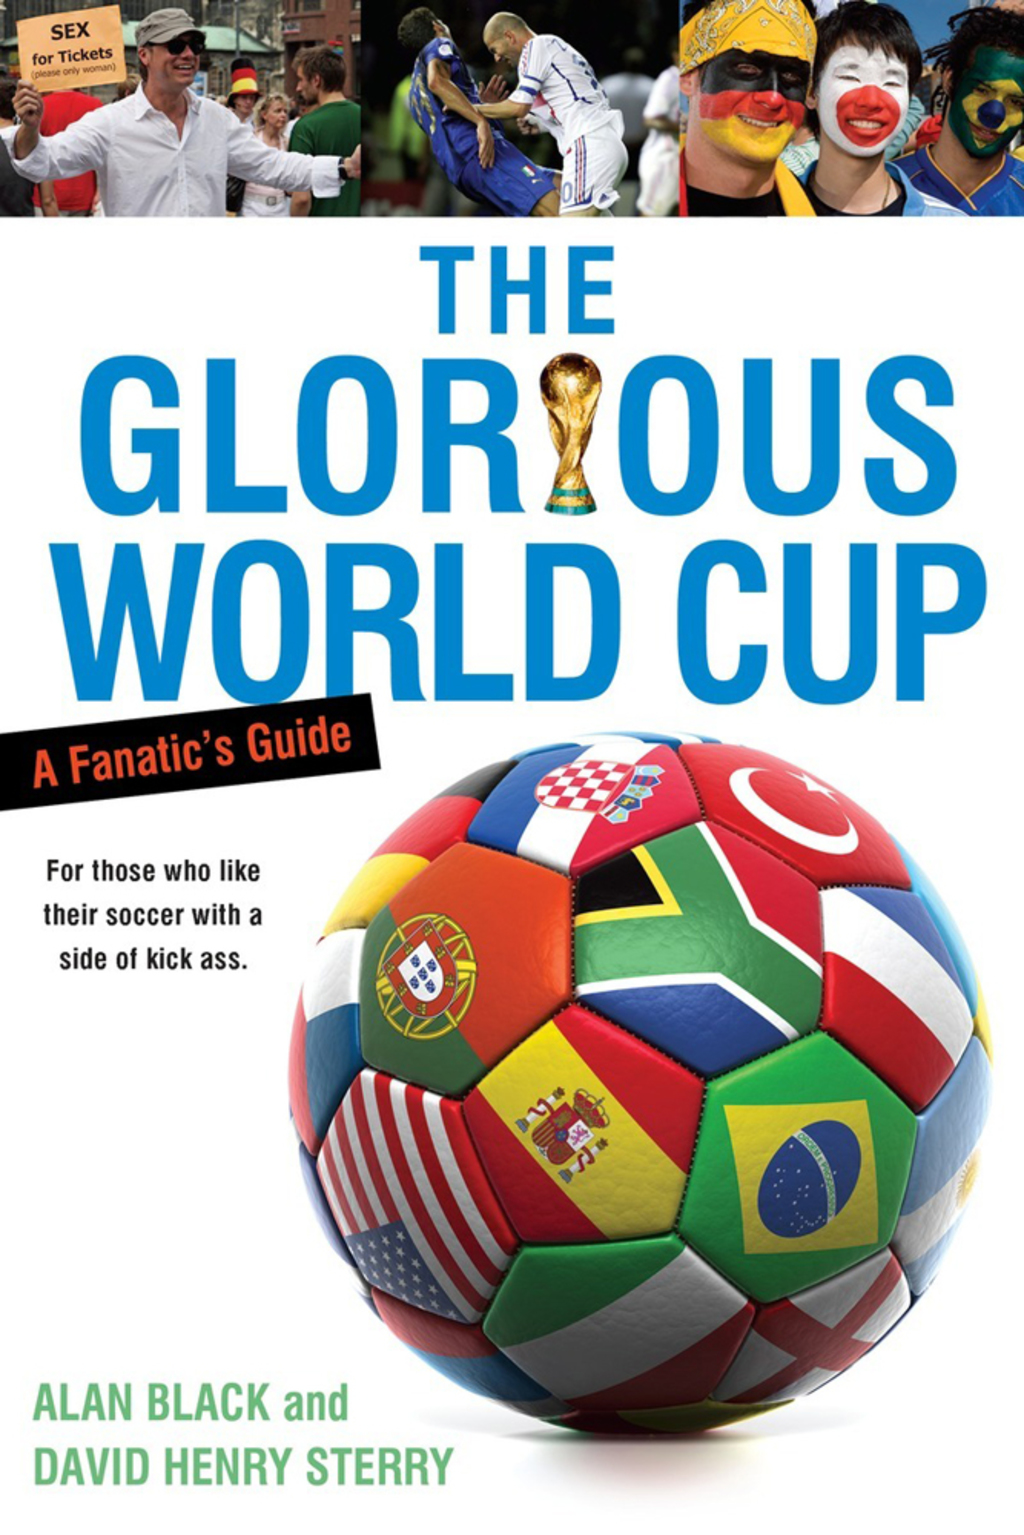 The Glorious World Cup (ebook) eBooks